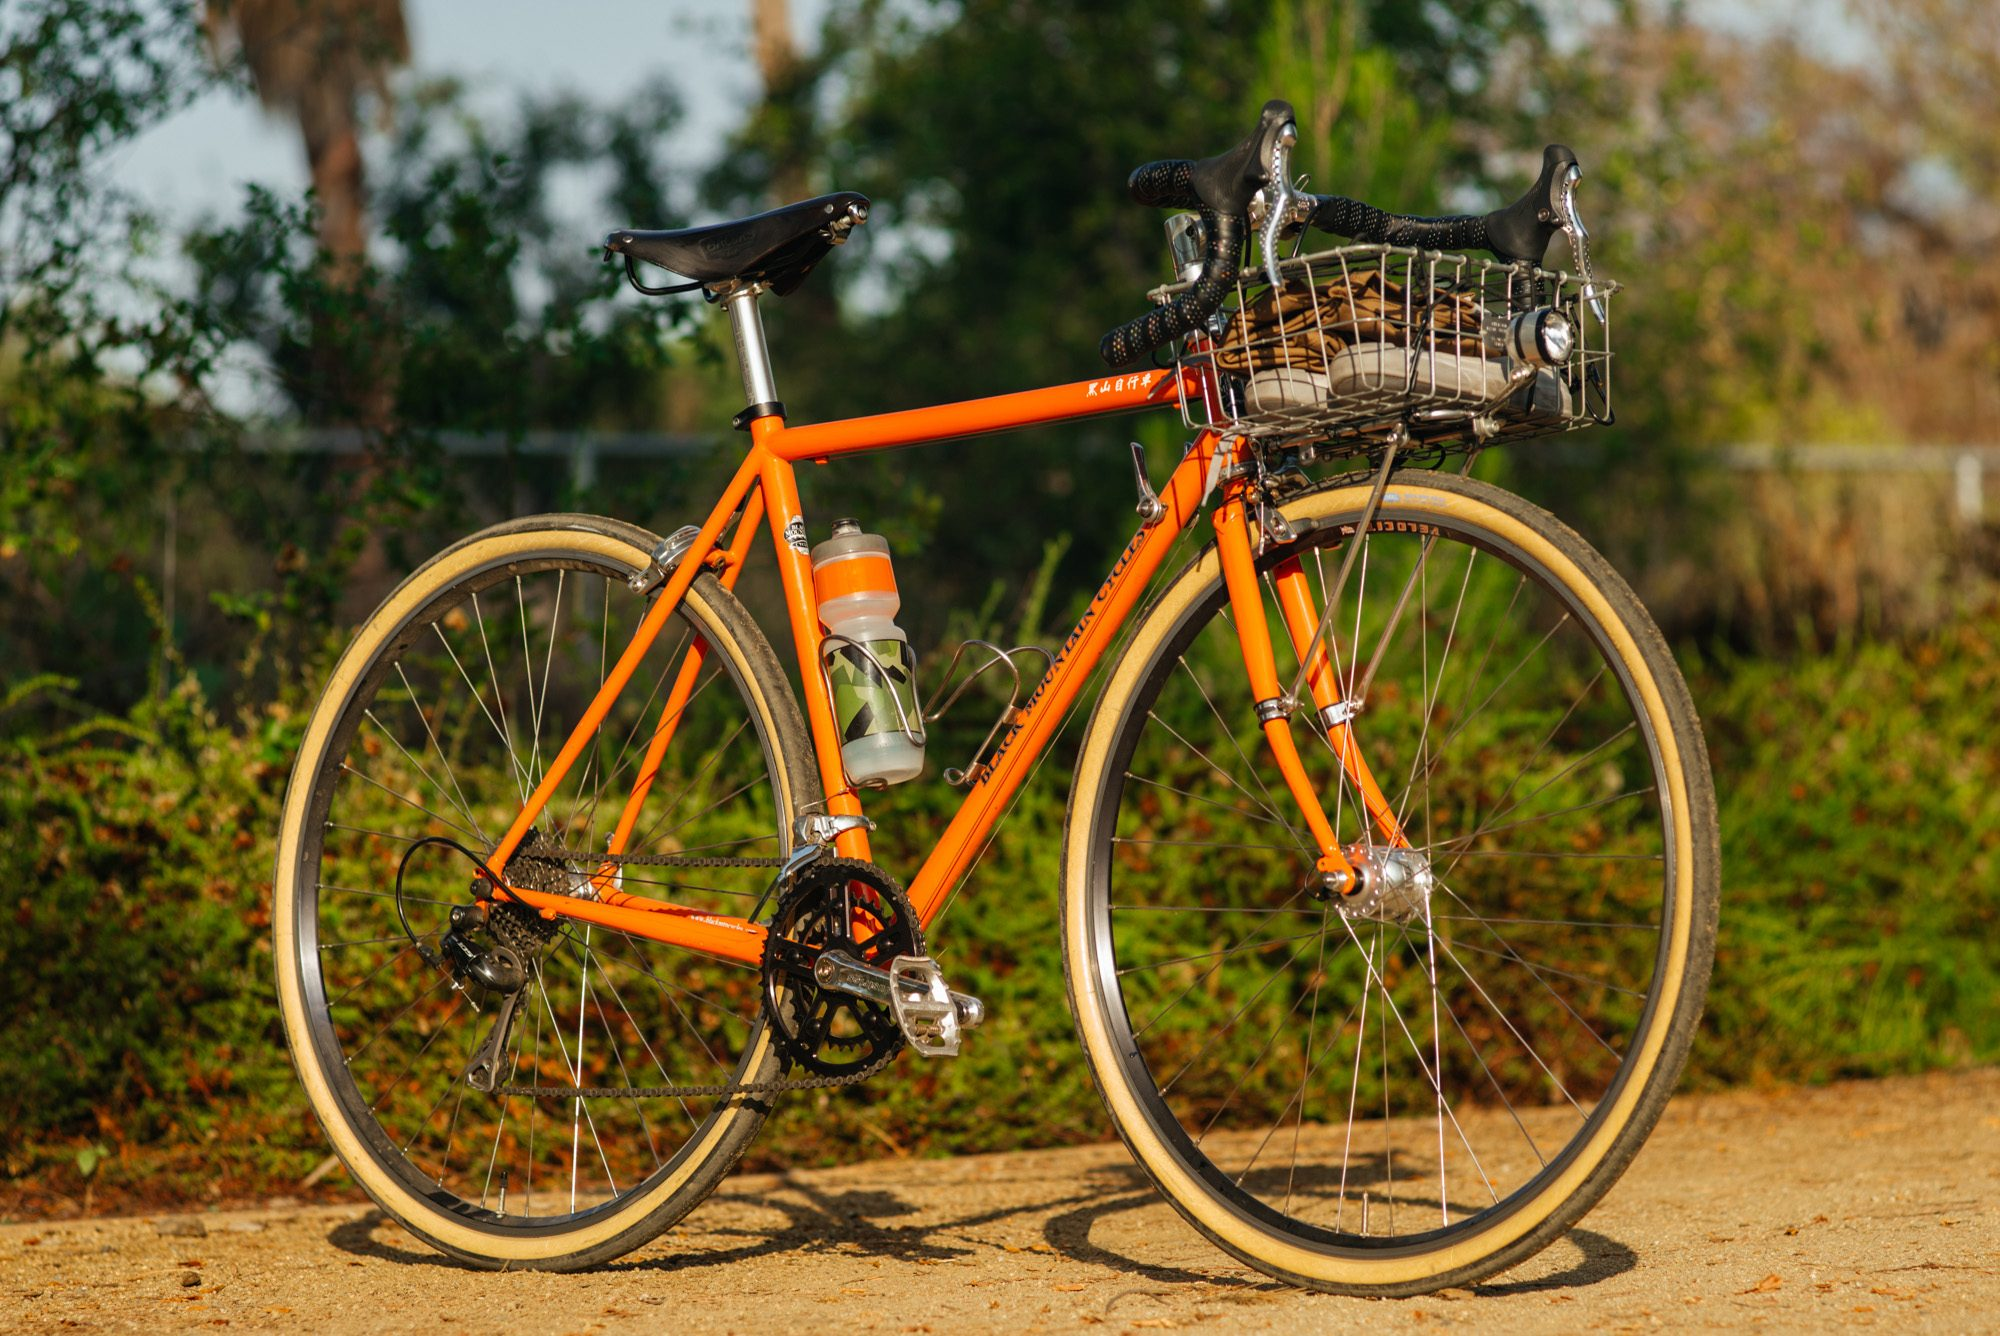 Bob's Black Mountain Cycles Basket Bike Commuter